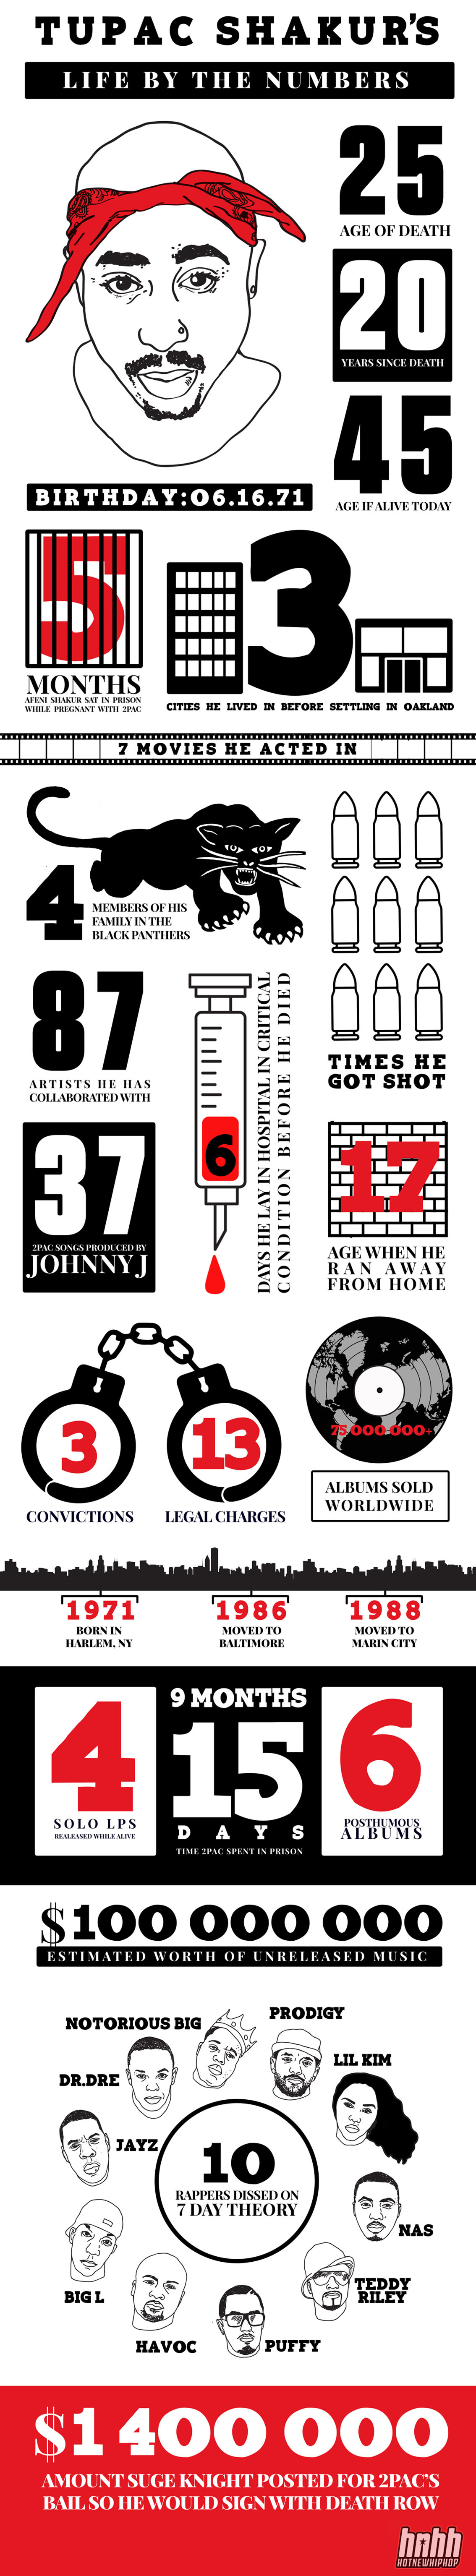 Tupac Shakur Life by the Numbers - Rap Infographic